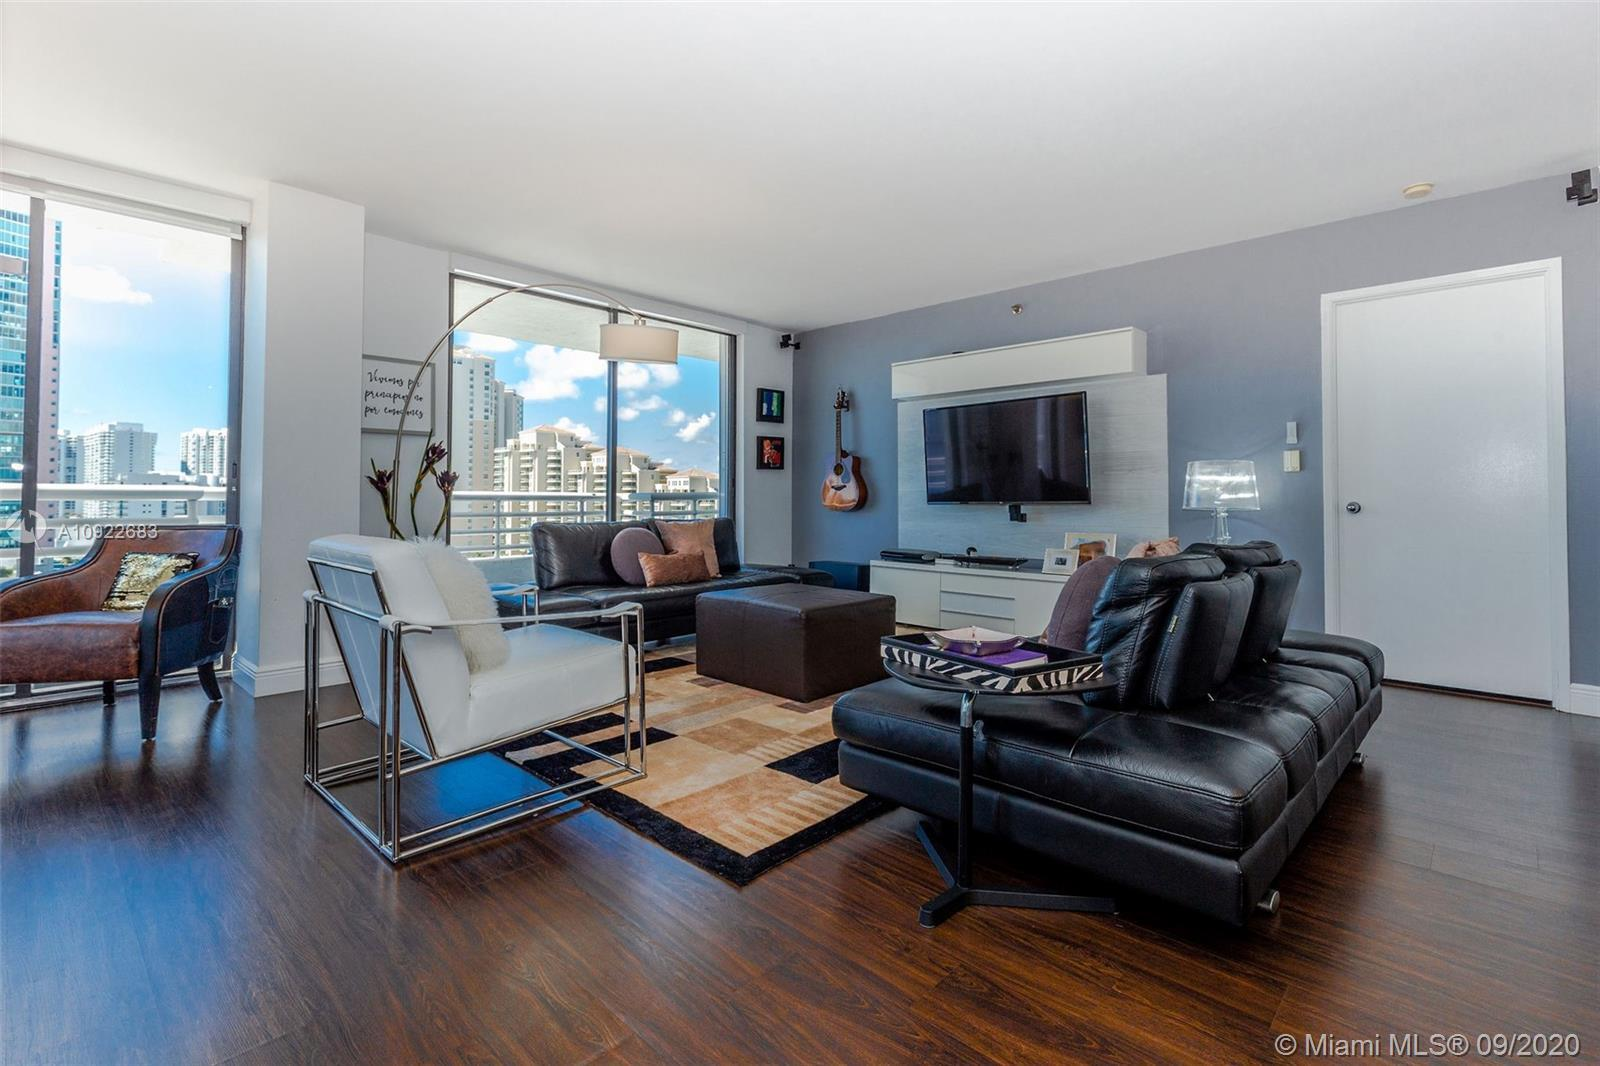 DON'T MISS OUT ON THIS OPPORTUNITY TO LIVE IN THE MUCH DESIRED AVENTURA. Breathtaking views of the I